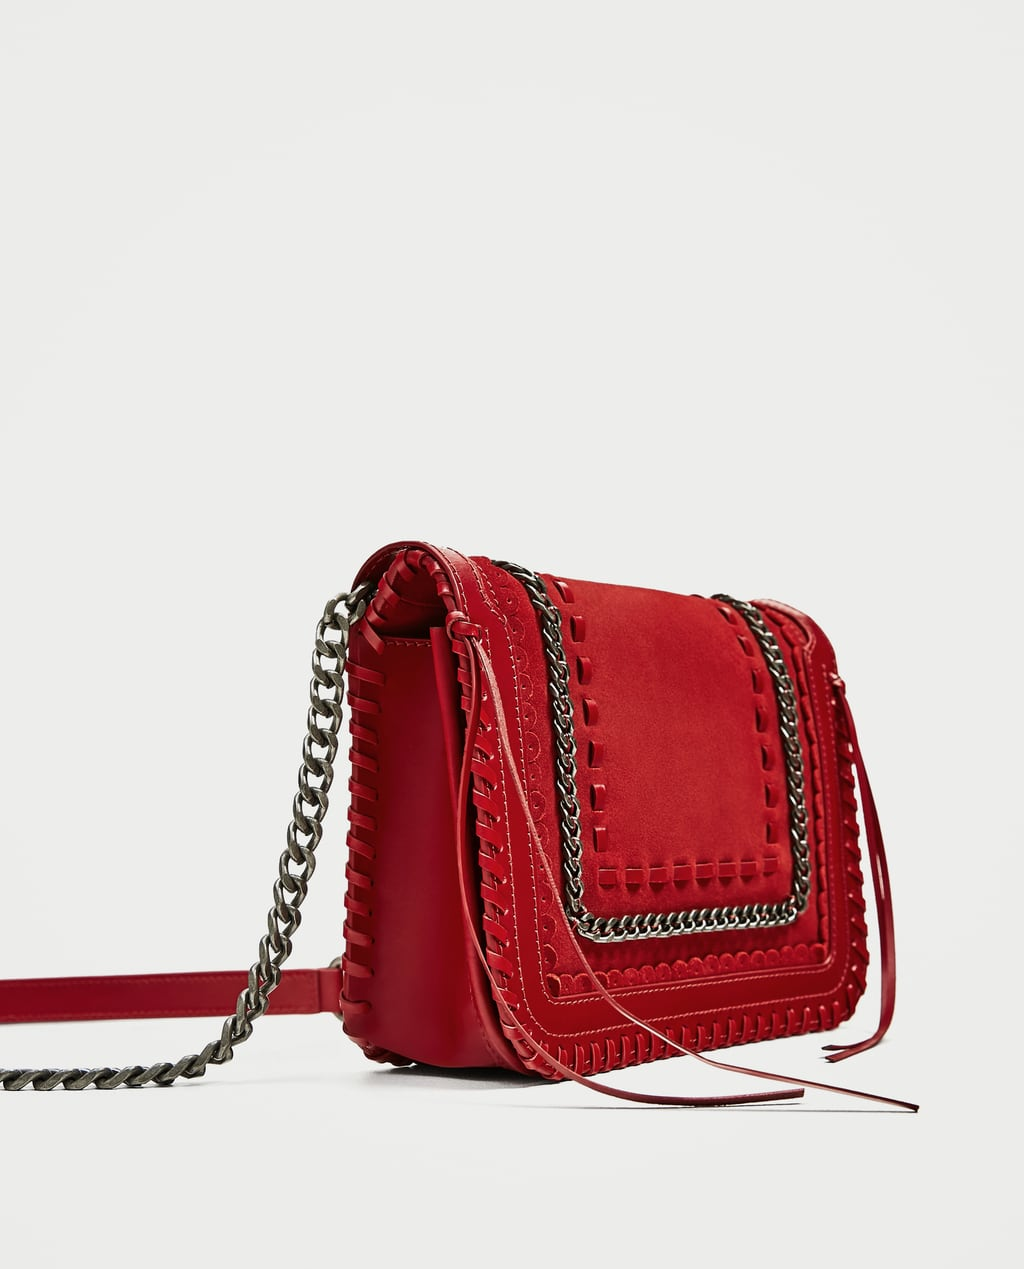 RED LEATHER CROSSBODY BAG - Leather-BAGS-WOMAN | ZARA United States